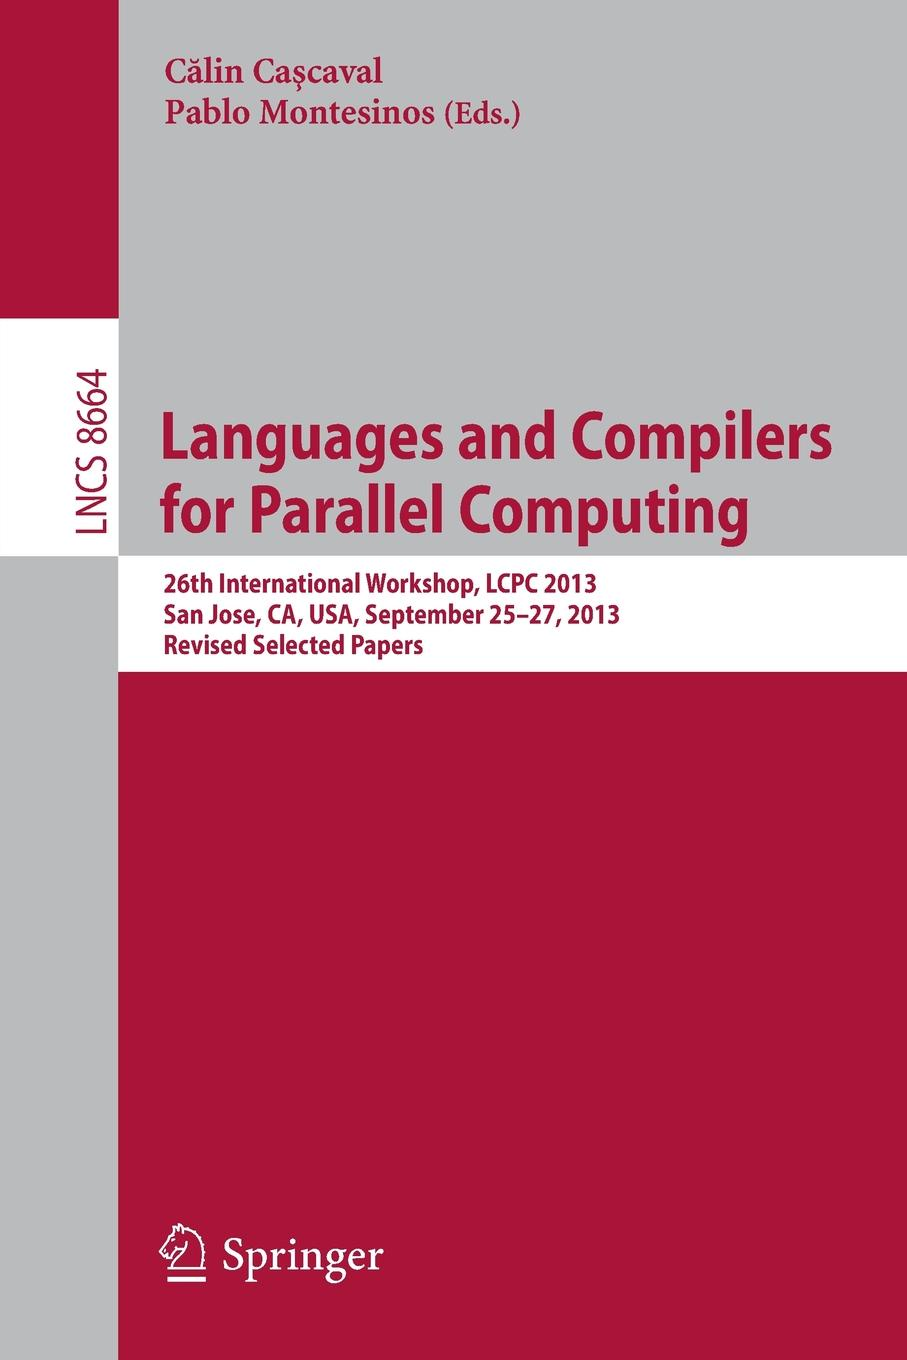 Languages and Compilers for Parallel Computing. 26th International Workshop, Lcpc 2013, San Jose, CA, USA, September 25--27, 2013. Revised Selected Pa